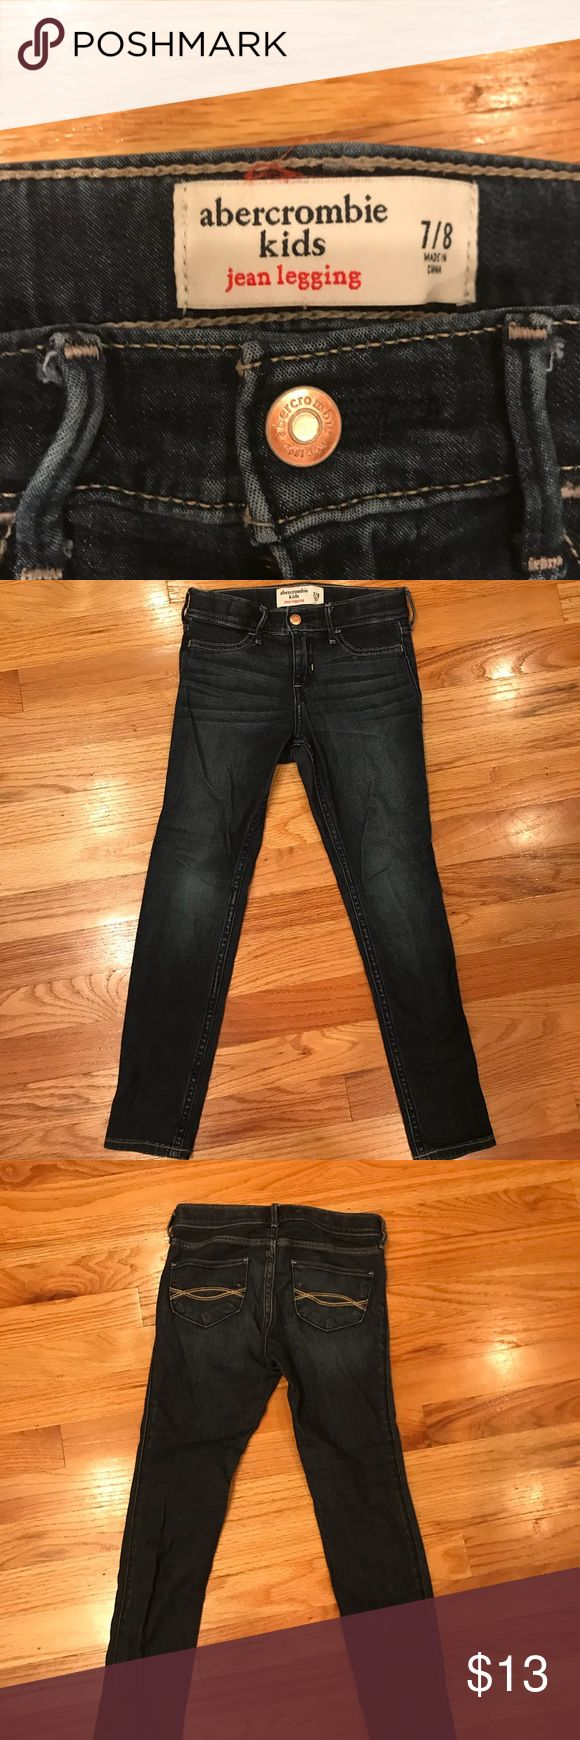 Abercrombie girls jean jeggings Abercrombie kids girls jean jeggings.  Size 7/8.  Worn only twice.  Run small.  Perfect condition. Abercombie Kids Bottoms Jeans